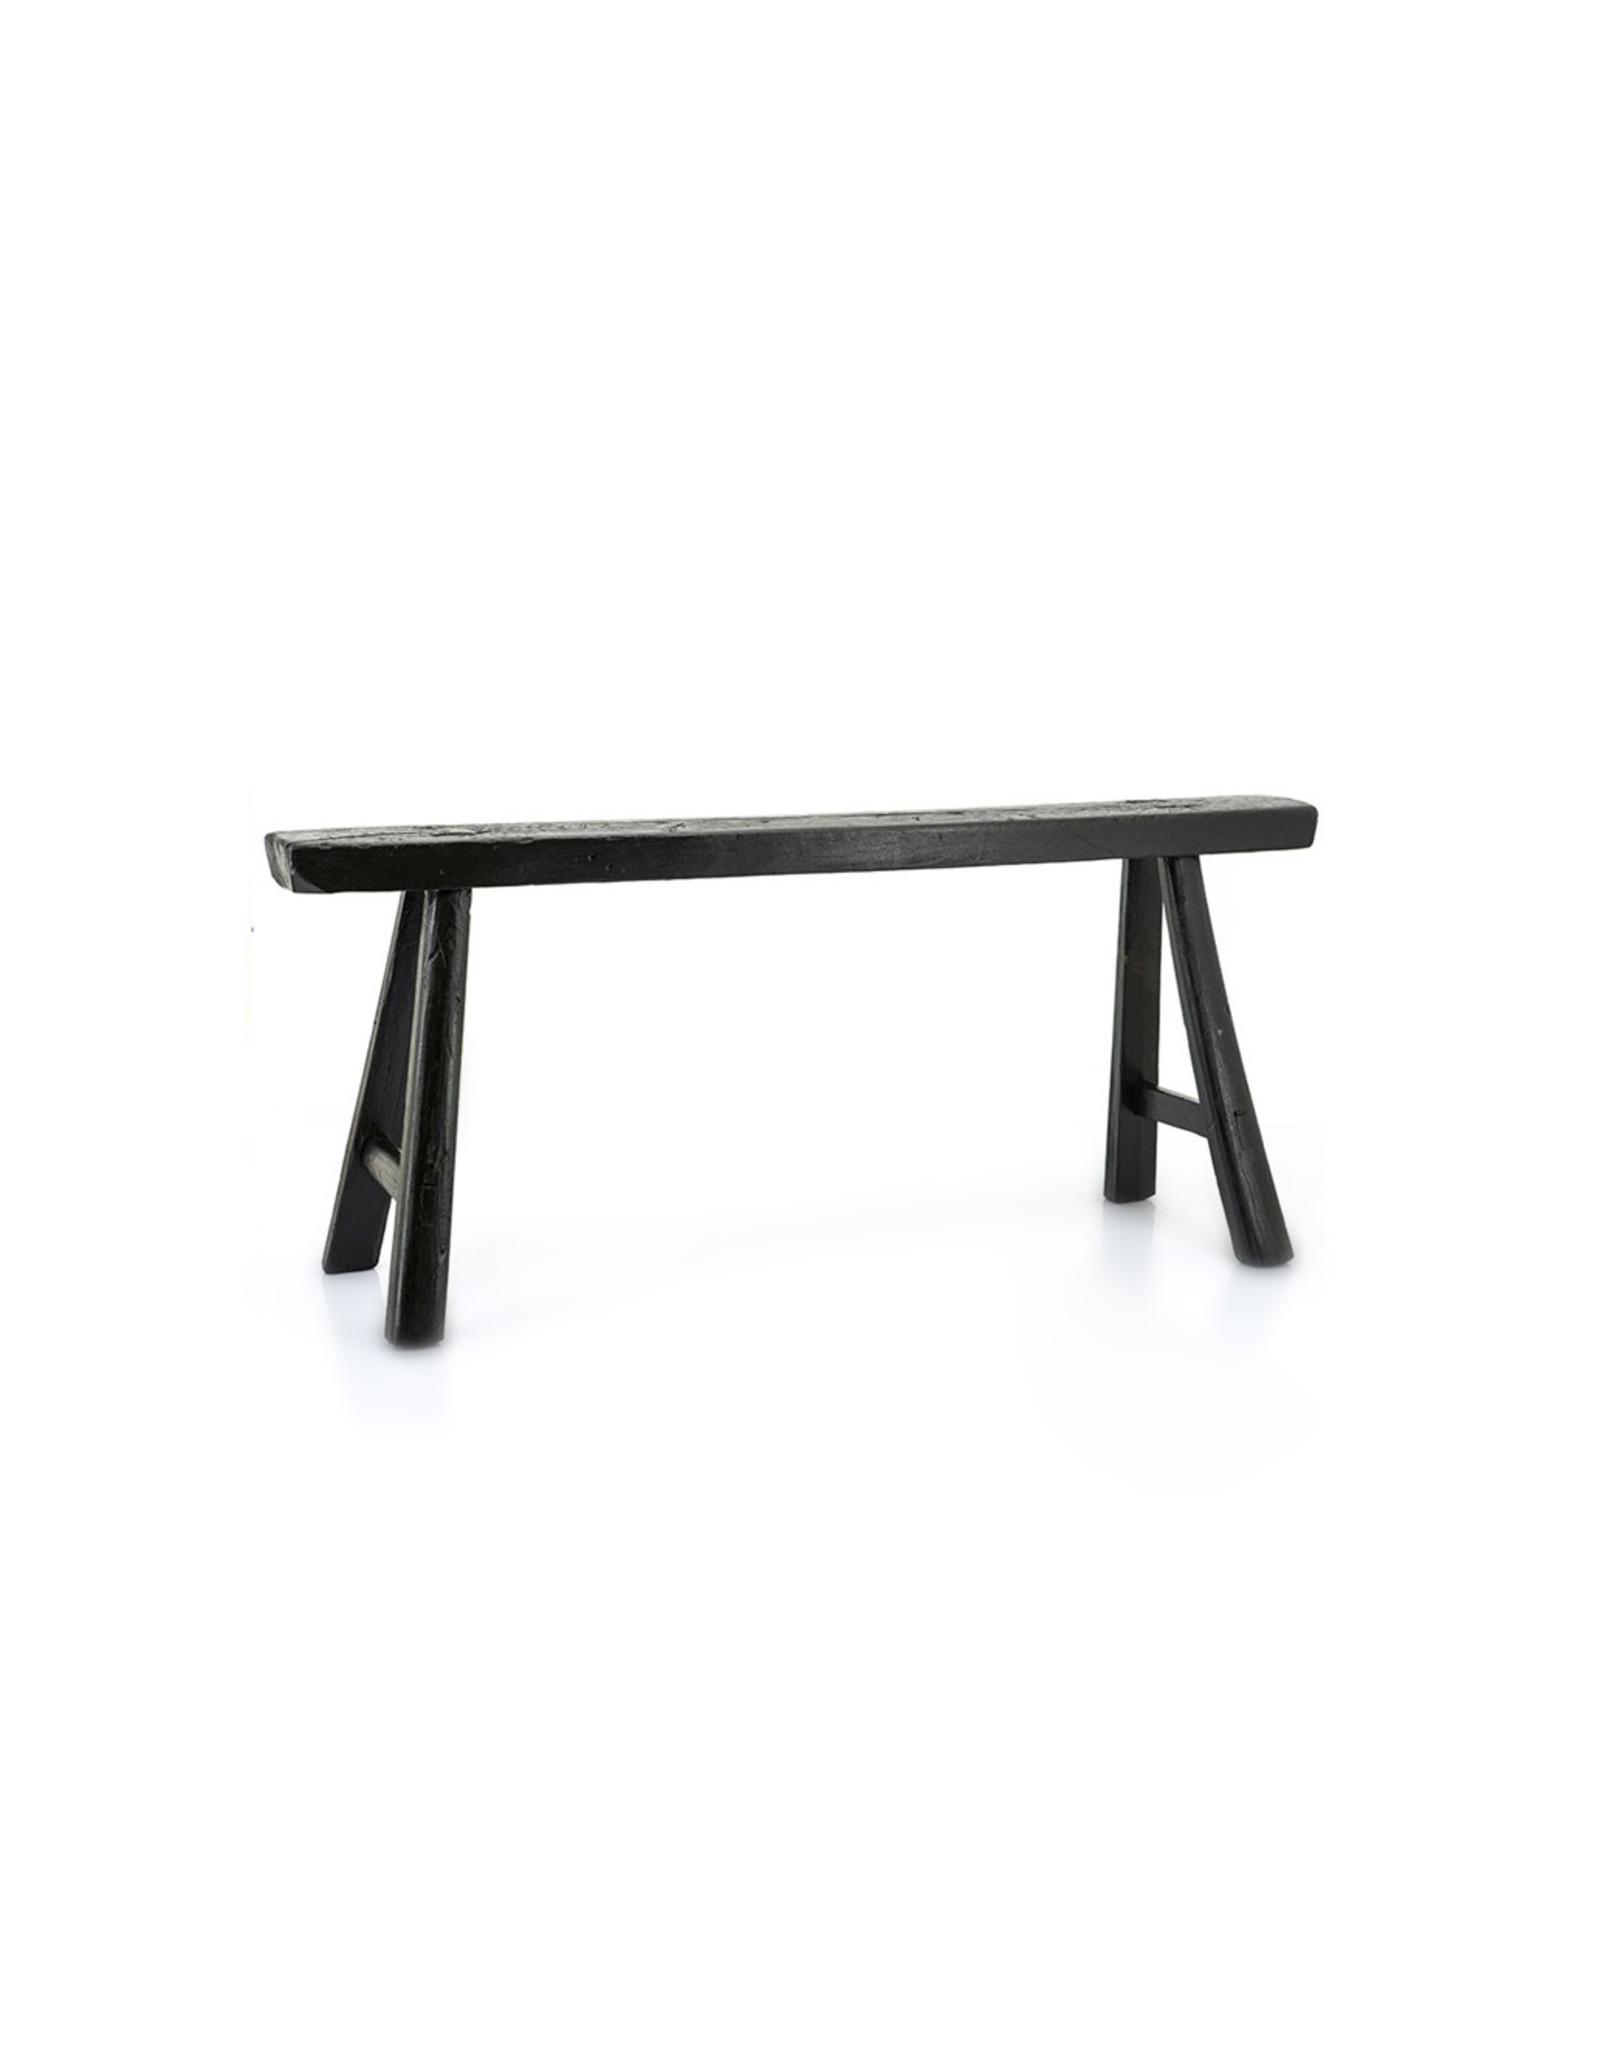 Black Chinese plain wooden bench